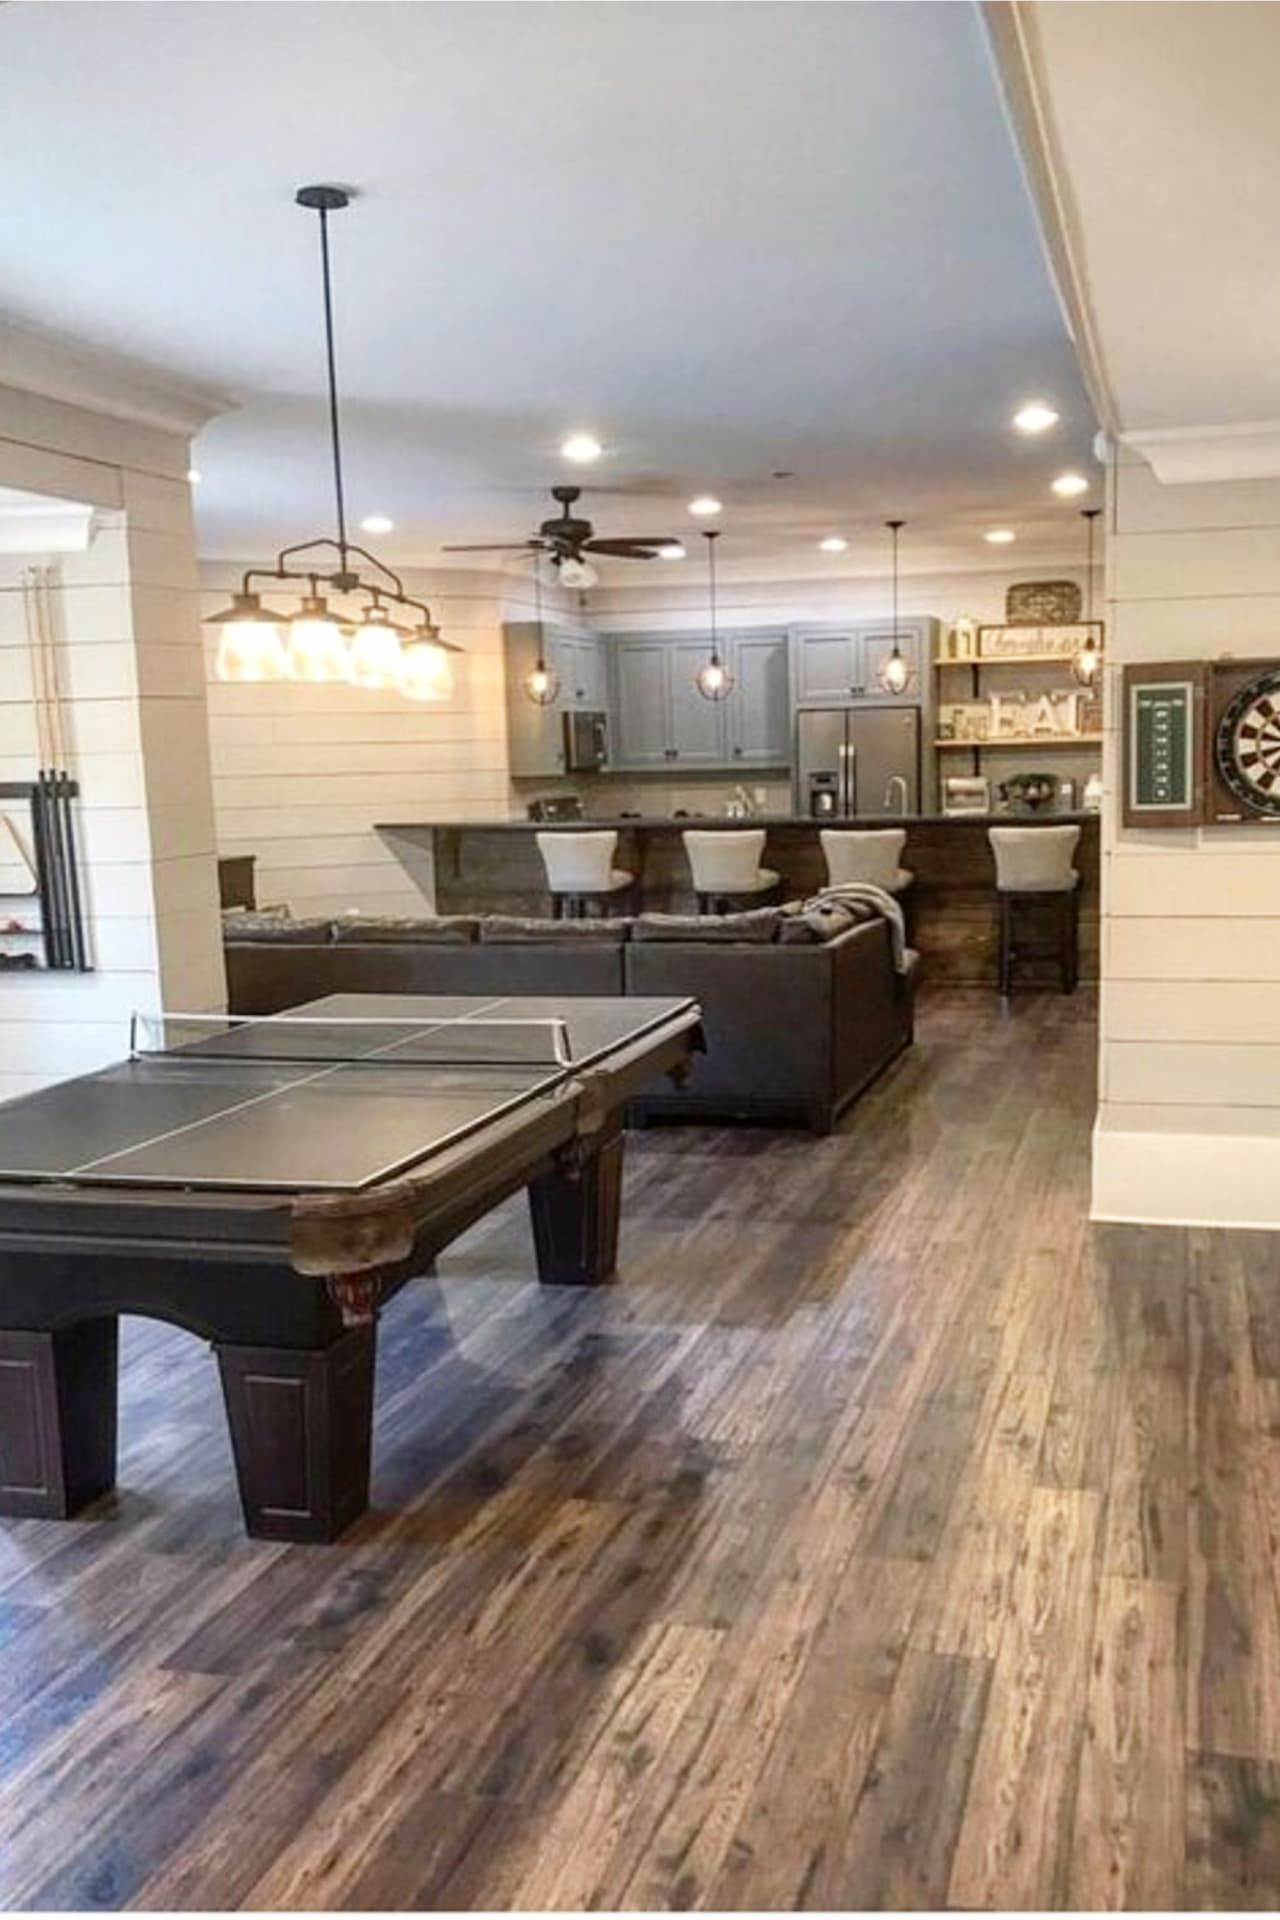 Basement Remodel Ideas Gorgeous Diy Finished Basement Decor Ideas On A Budget Or Not Clever Diy Ideas Cozy Basement Diy Finish Basement Finishing Basement